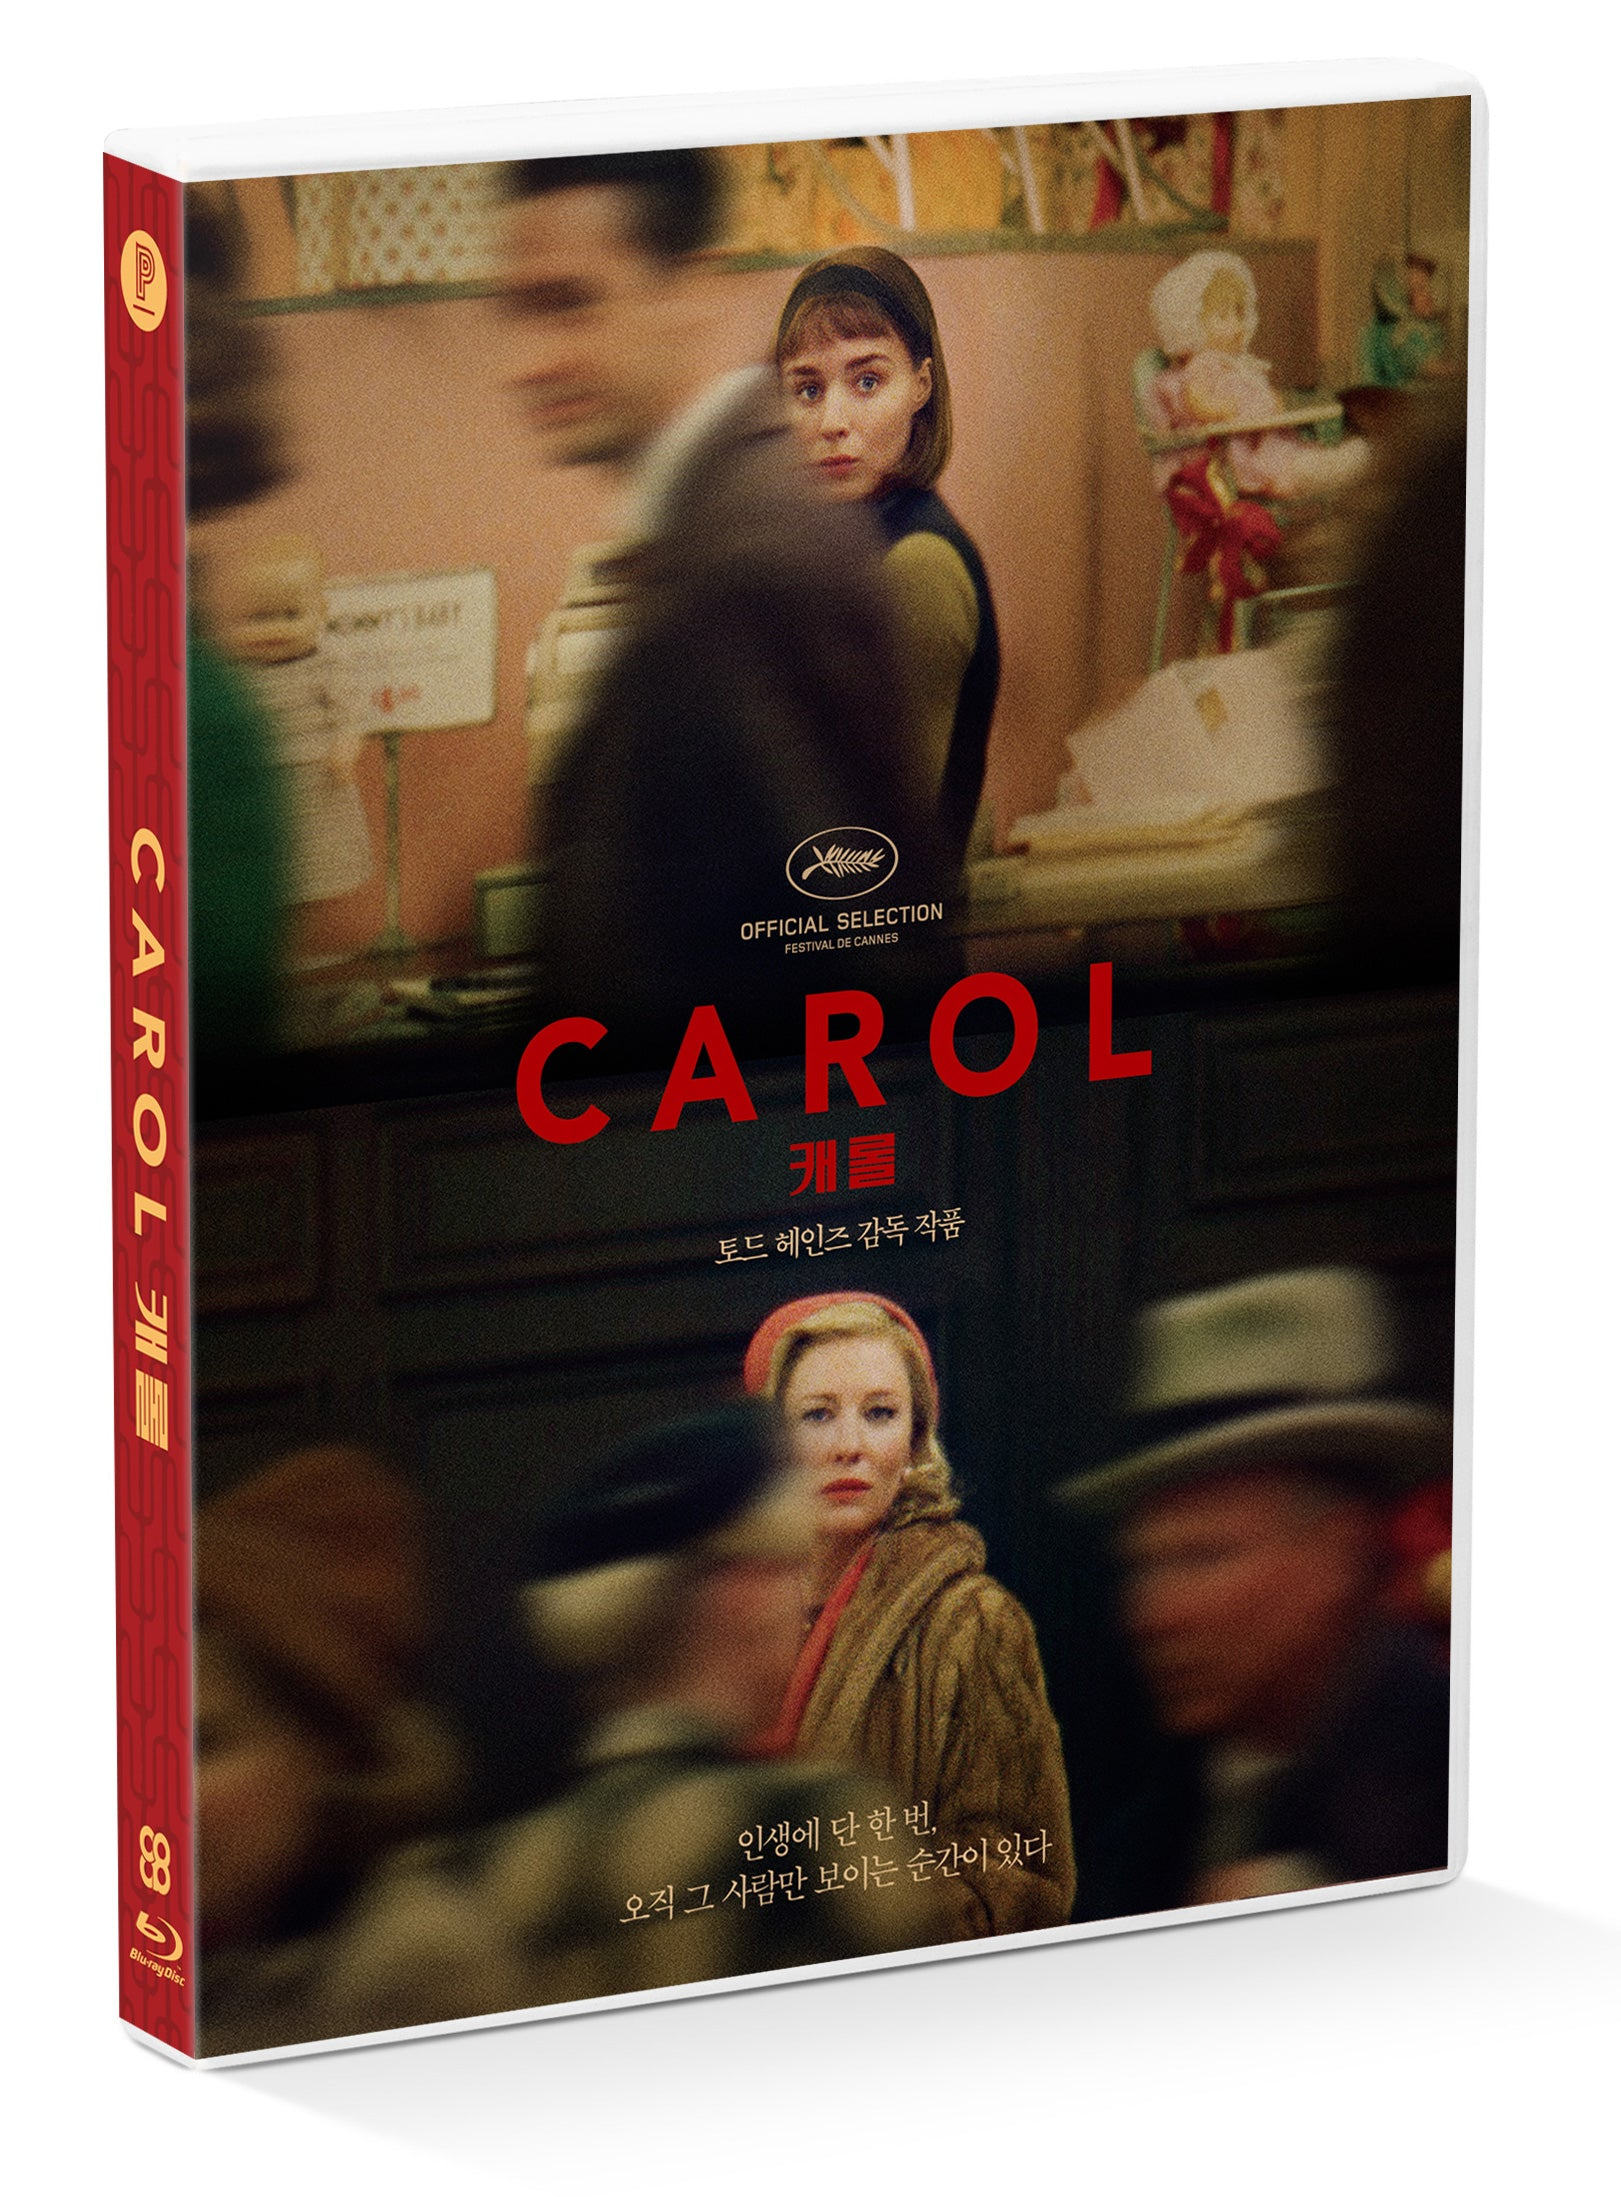 CAROL: 3rd Press Limited Edition (Blu-ray, 2Discs, 4 Photo Cards)